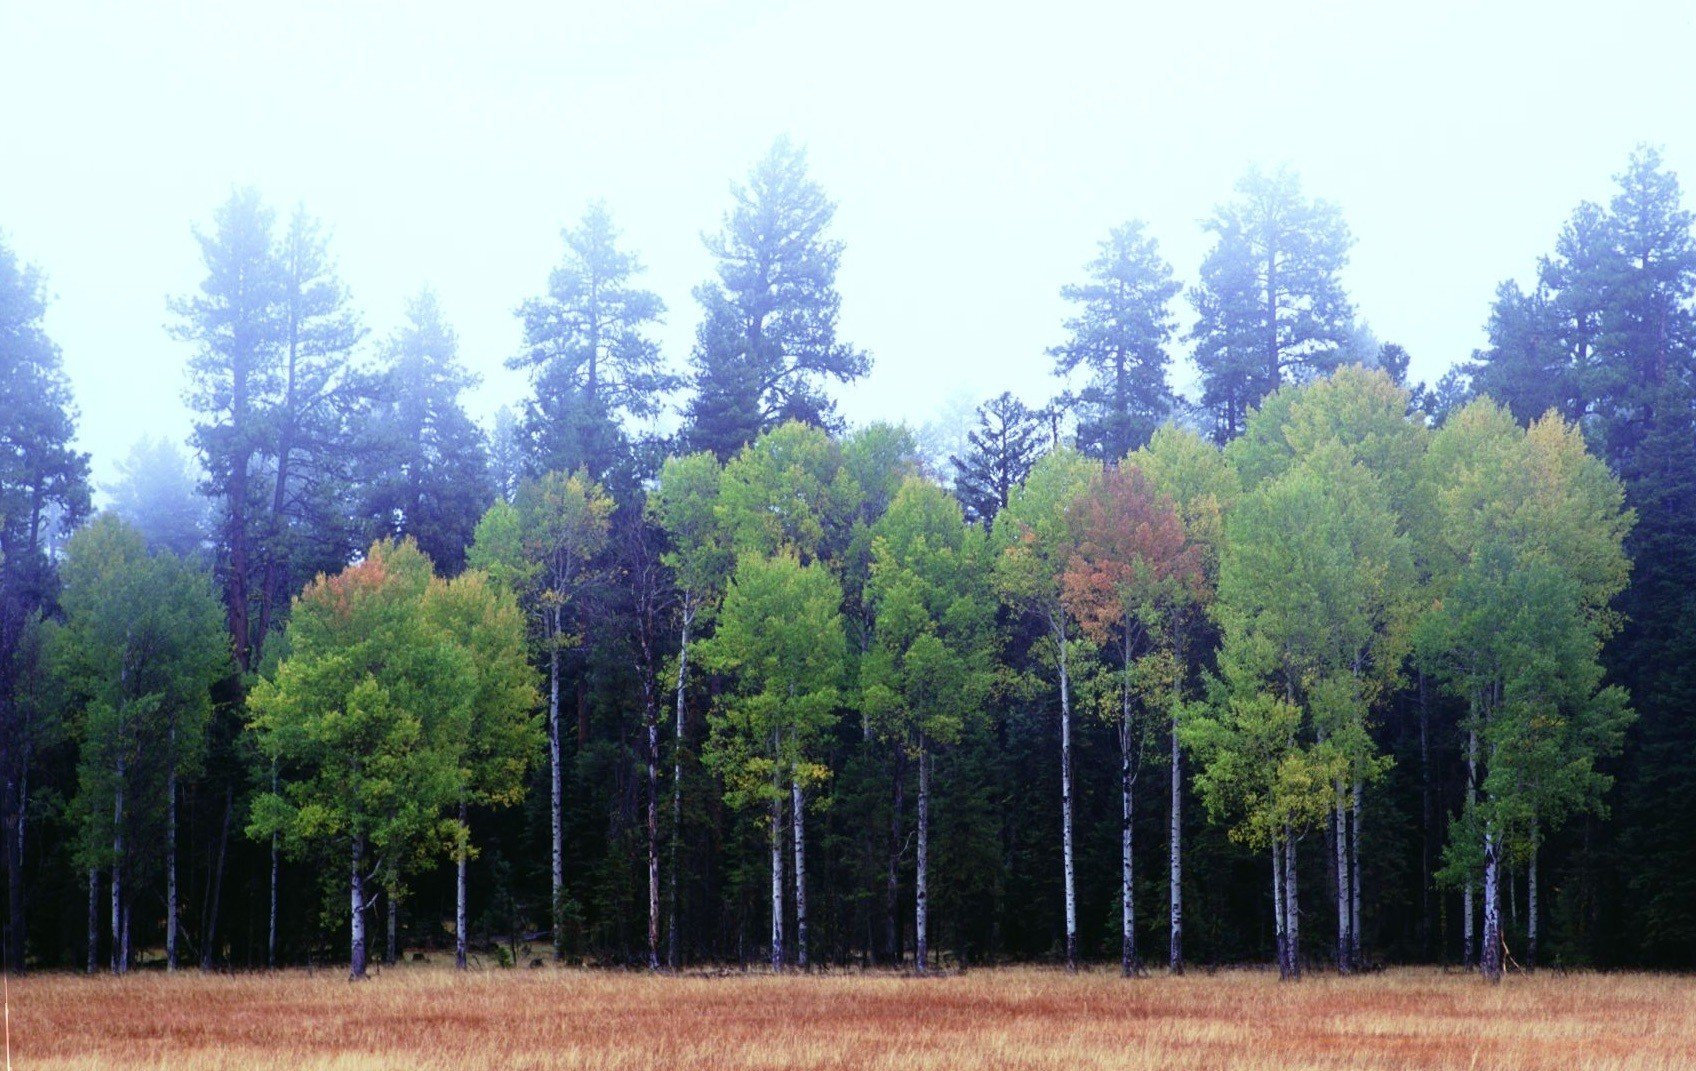 Figure 2.Quaking aspen (Populus tremuloides) (foreground) and ponderosa pine (Pinus ponderosa) (background) on the Ochoco National Forest in Oregon. While aesthetically pleasing, the image is disturbing if you note the utter lack of any aspen replacement stems Source: Sandy Lonsdale. First appeared inOregon Wild: Endangered Forest Wilderness(Timber Press, 2004).